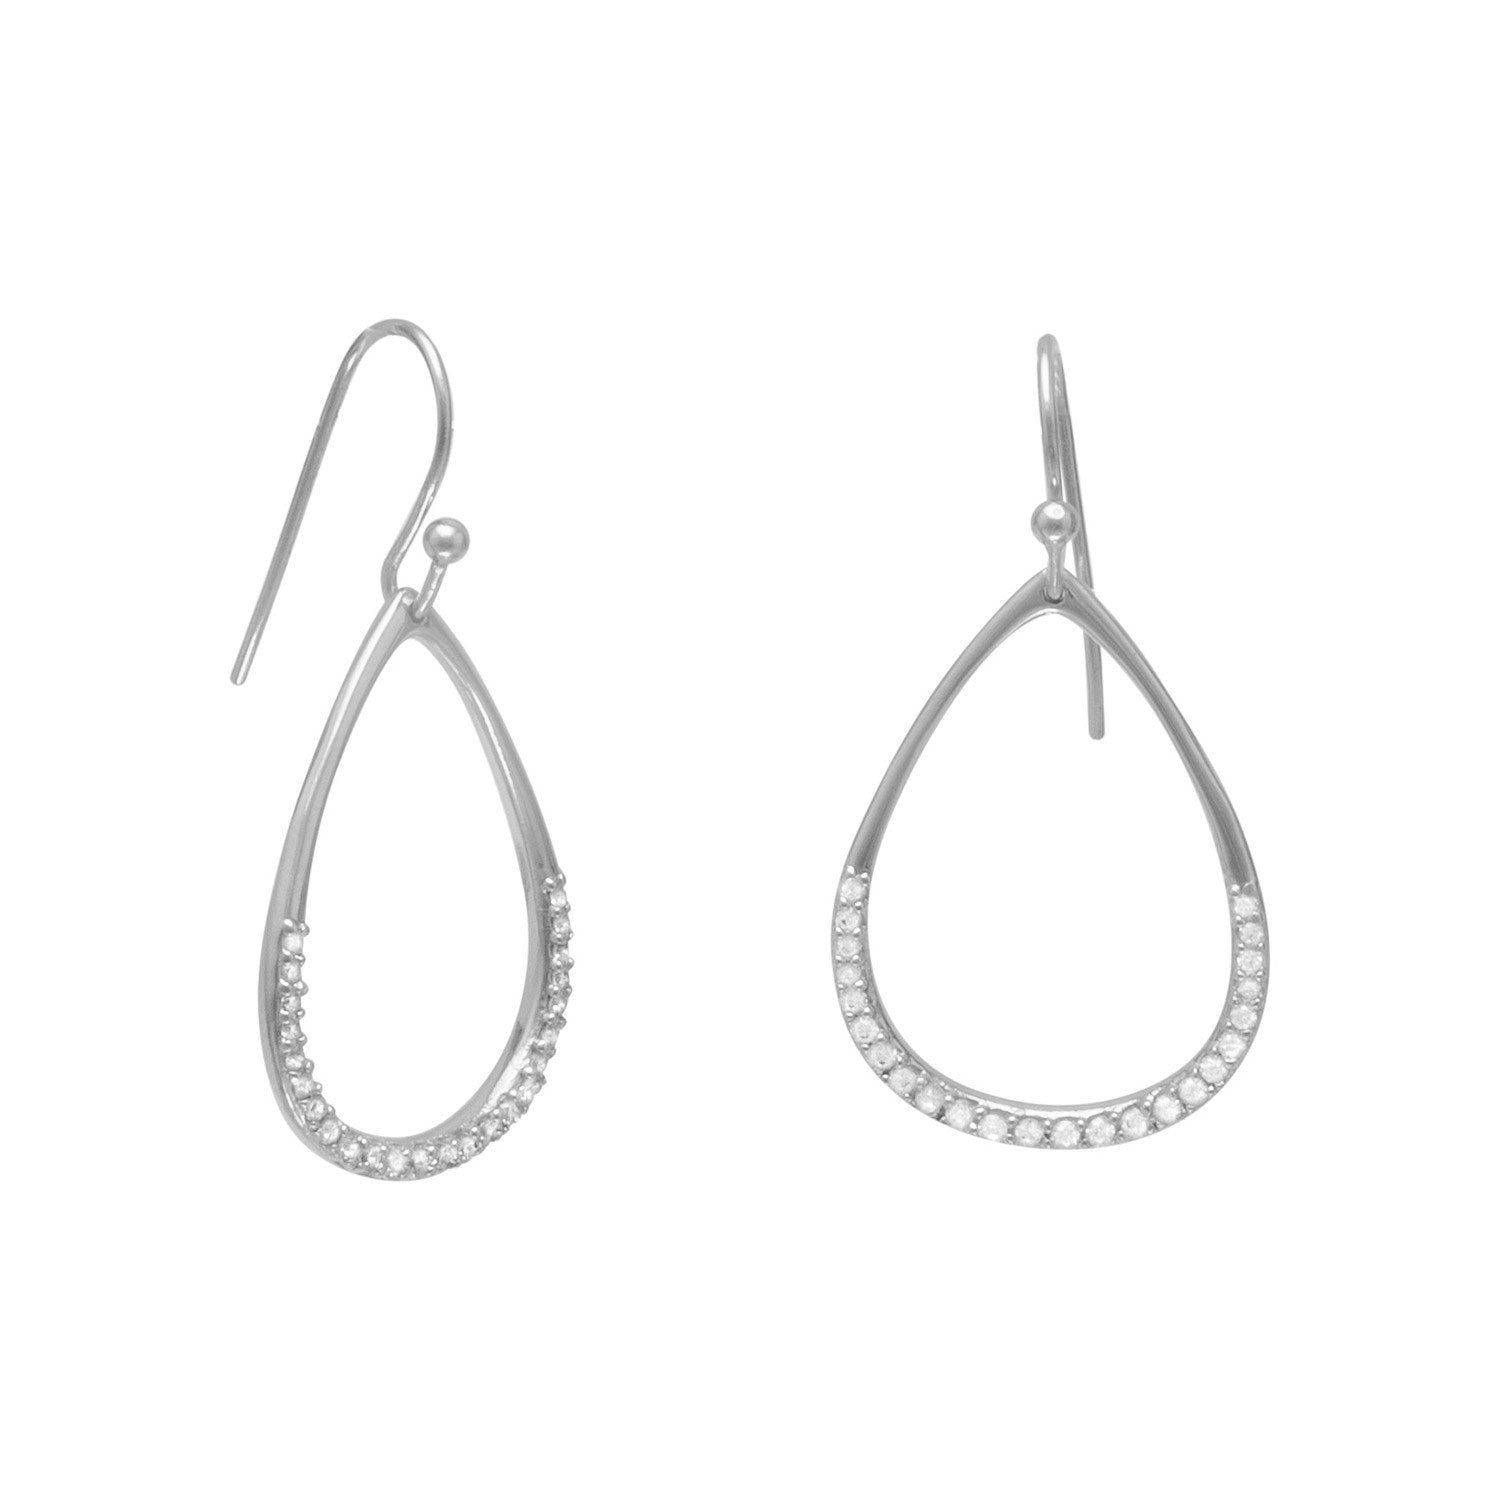 Rhodium Plated CZ Pear Drop Earrings - Rocky Mt. Outlet Inc - Shop & Save 24/7